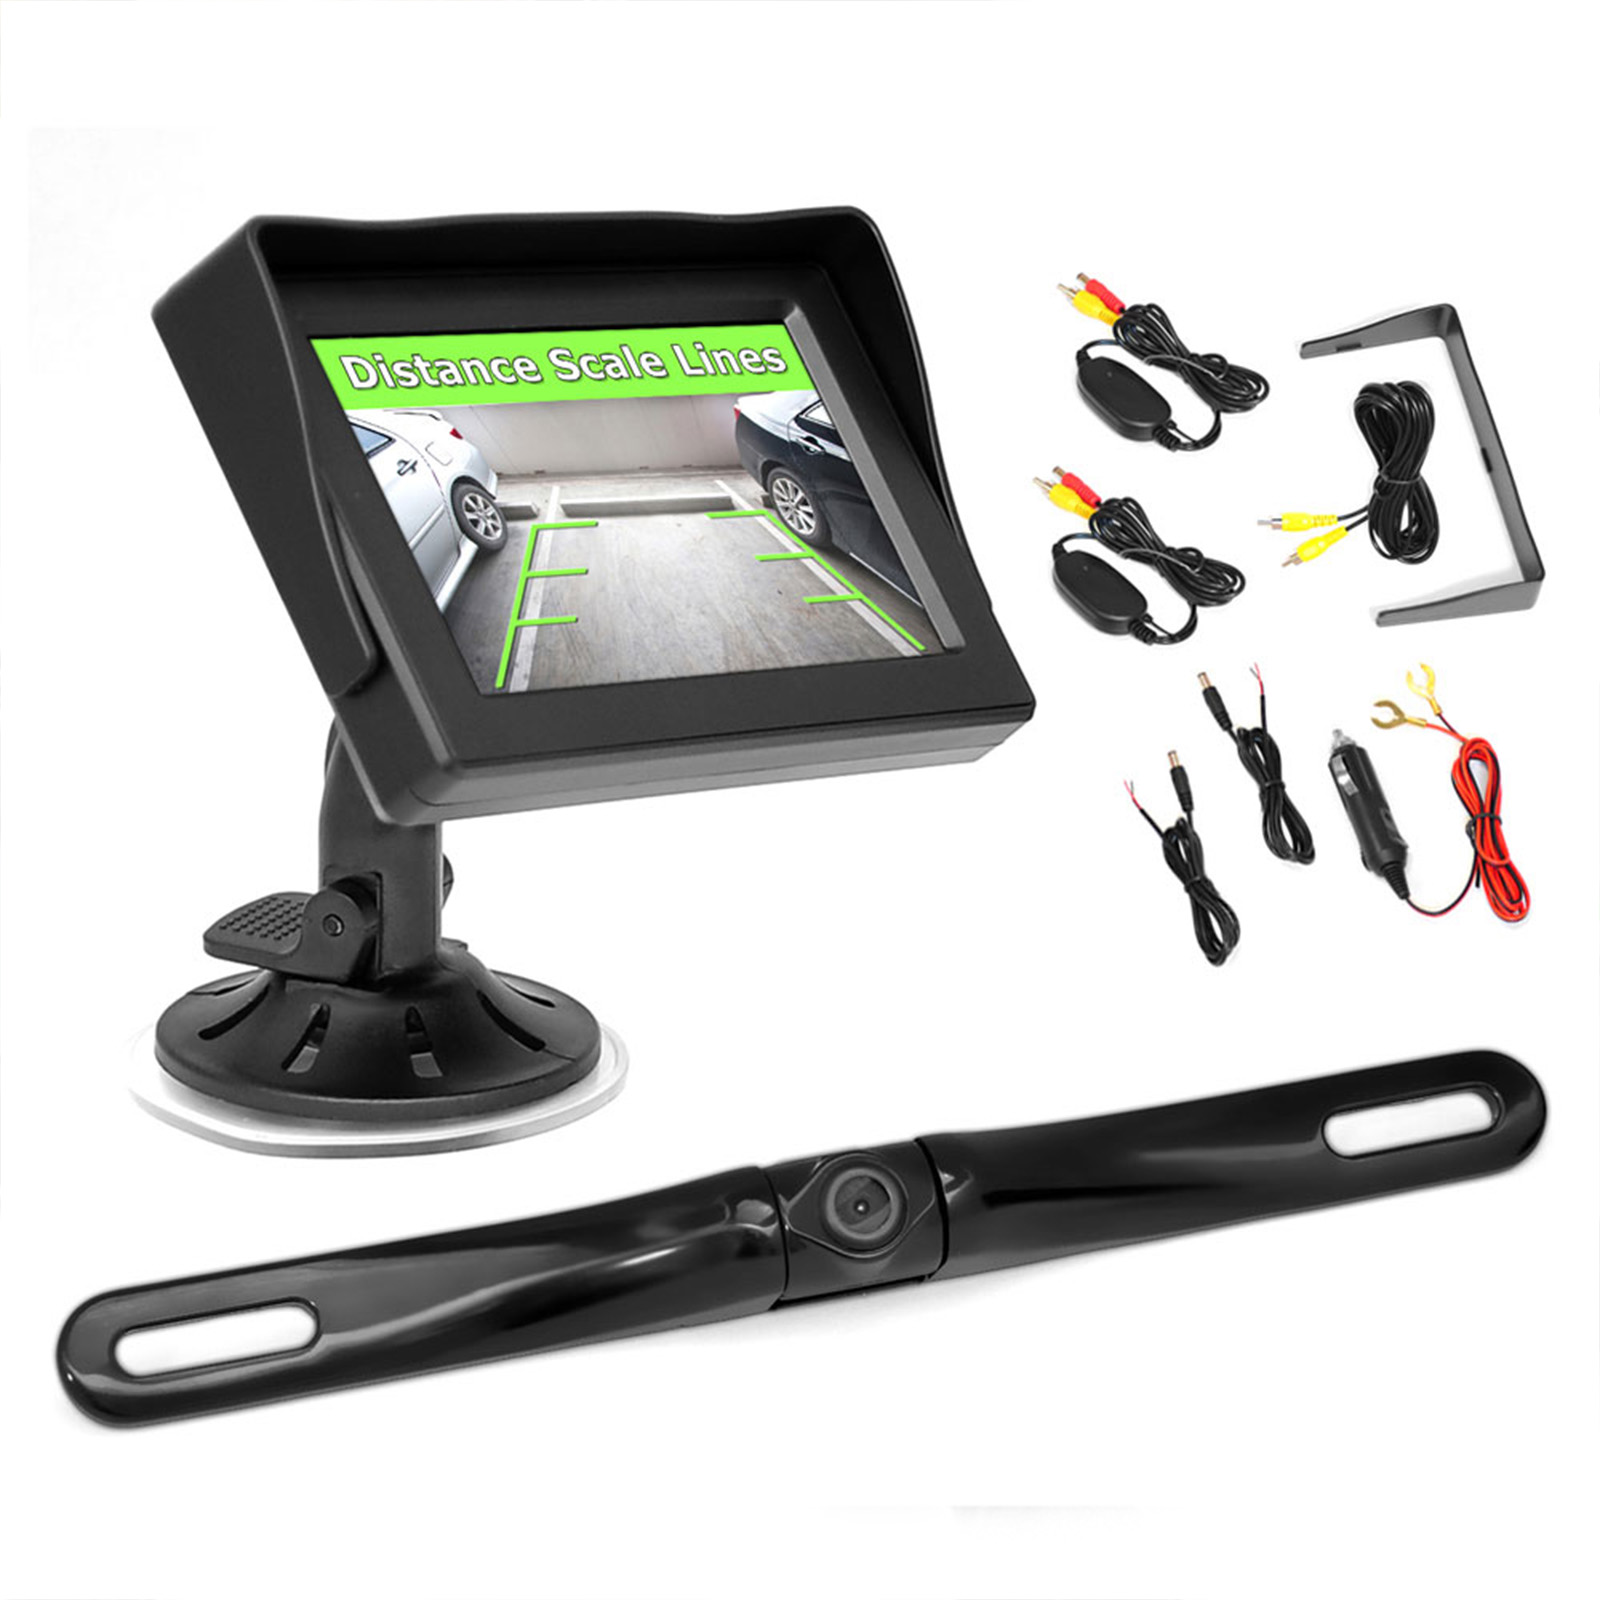 "Pyle cord free Transmiss Back-Up Rearview Parking Assist System Kit with License Plate Camera, 4.3"" Monitor and cord free Adapters"